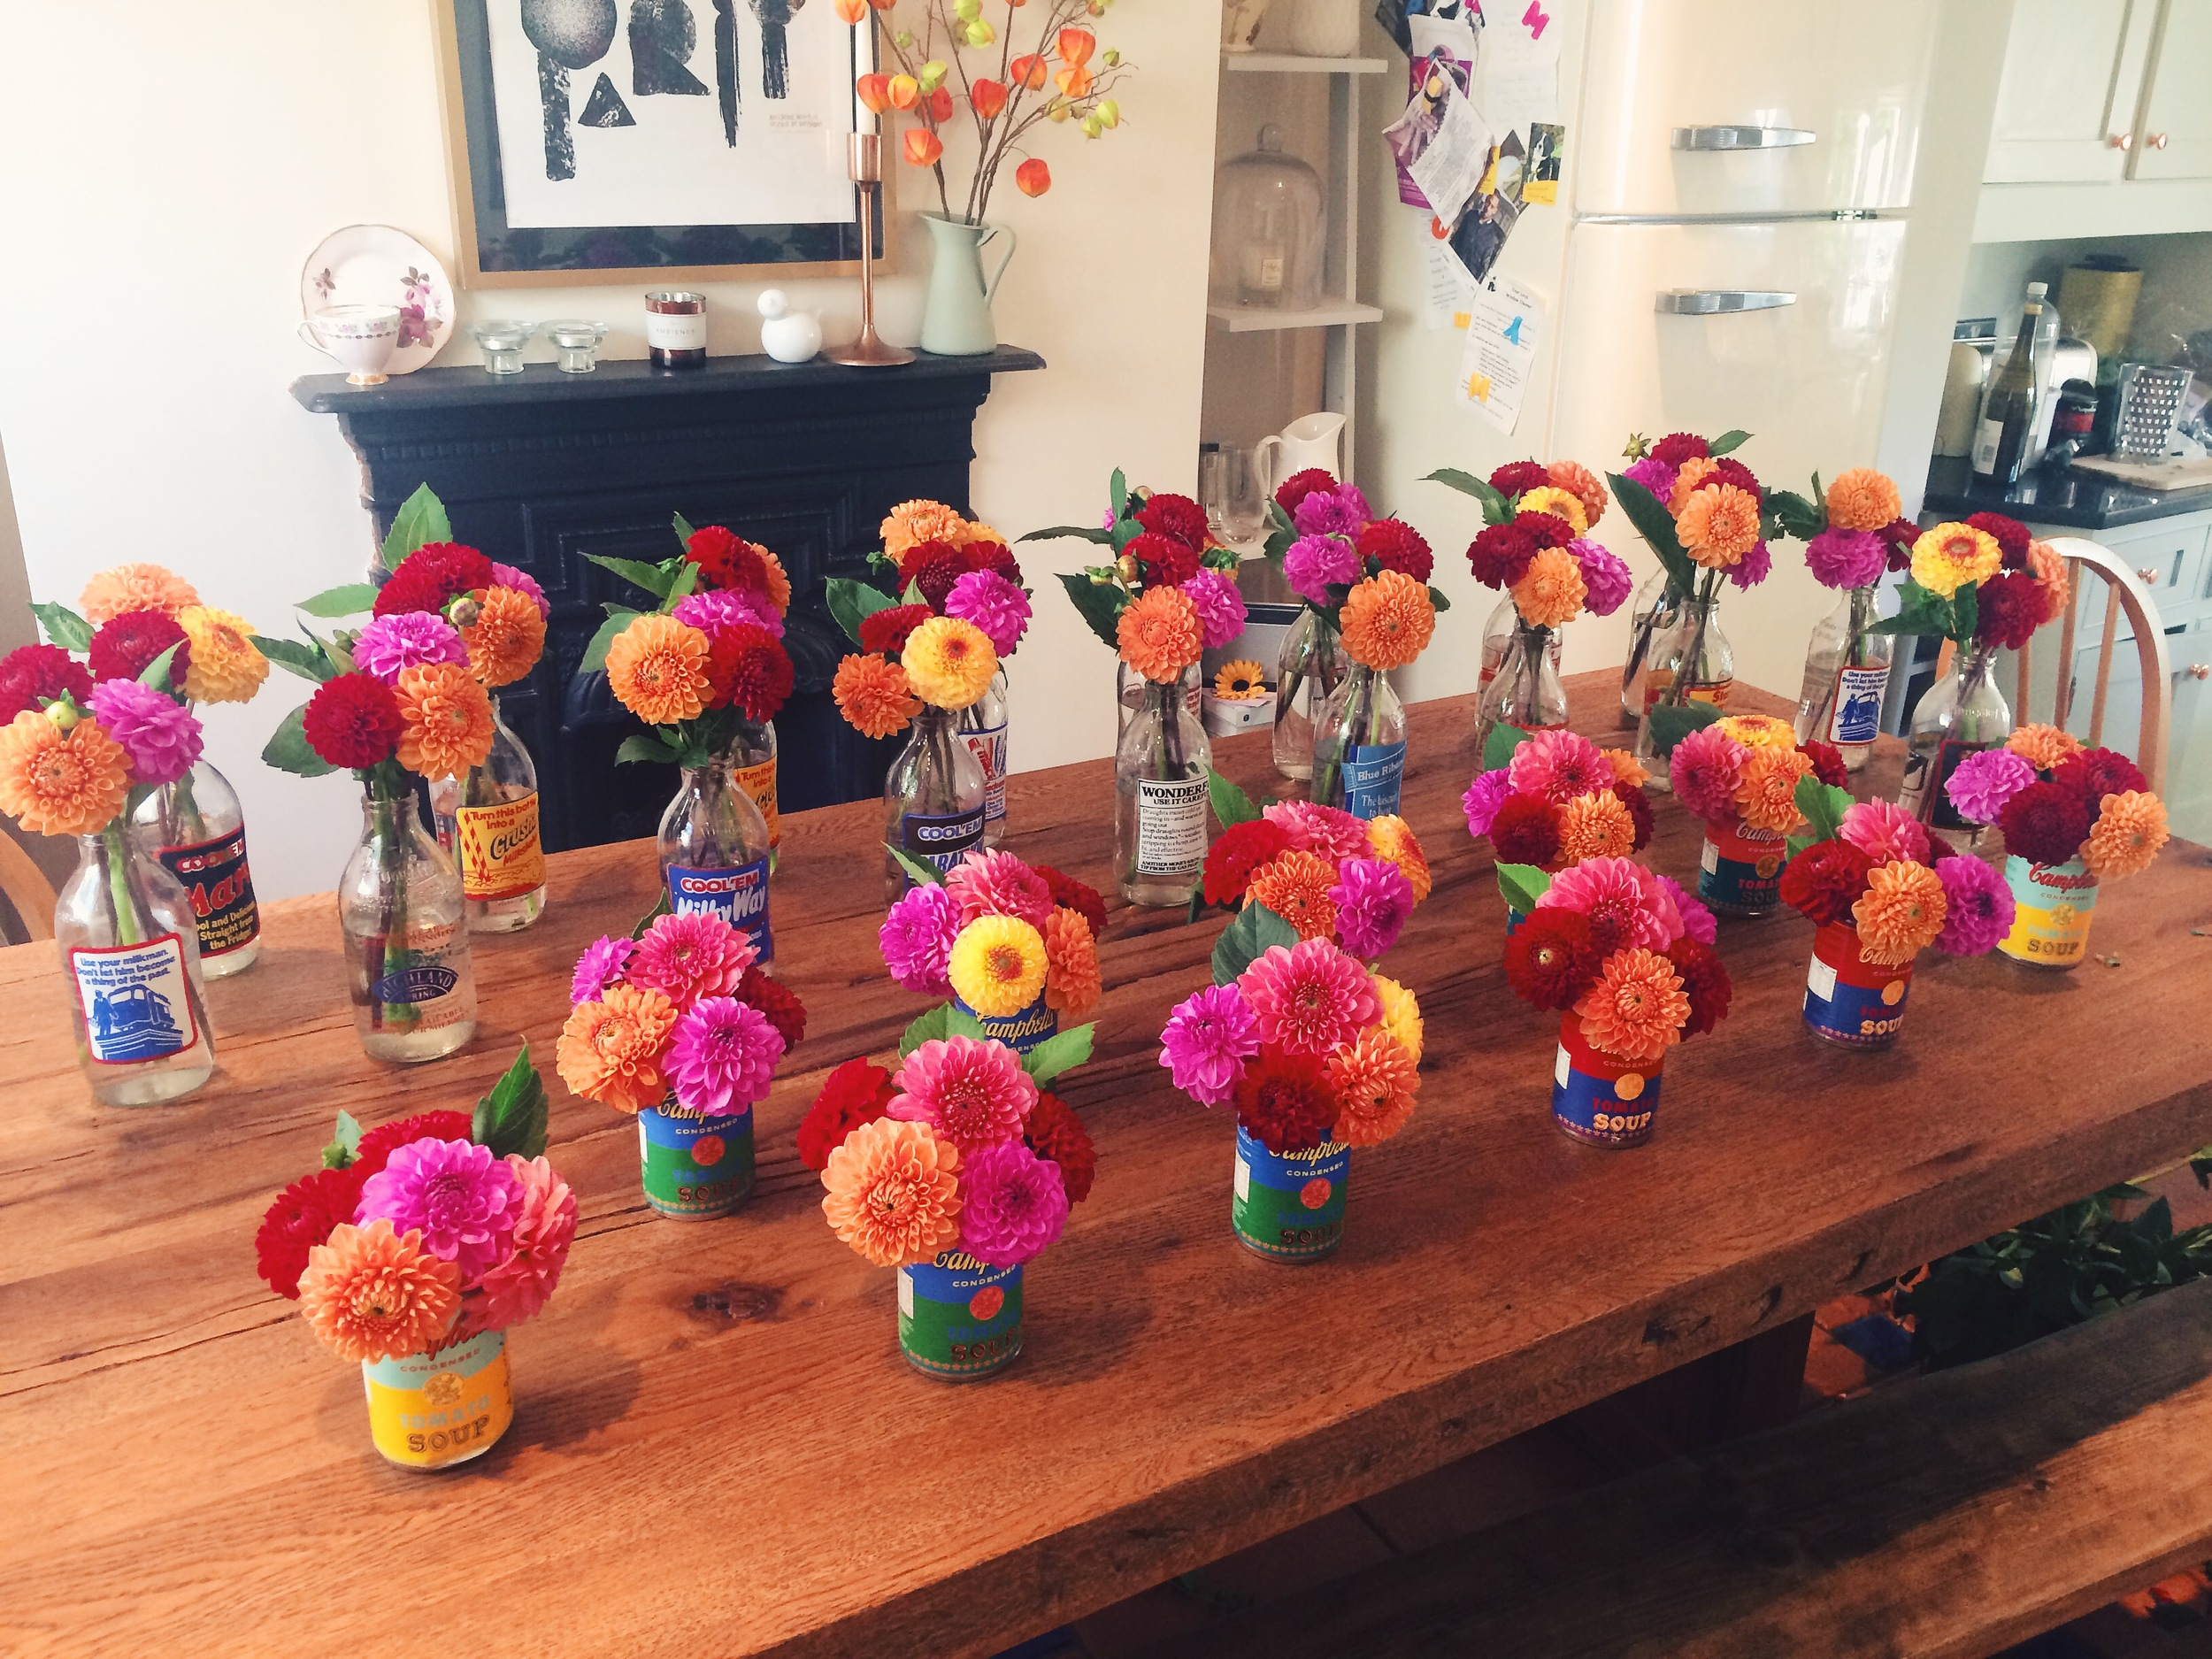 The pom pom dahlia's are so vibrant and worked well with the Pop Art soup cans - here they all are after being put together in my kitchen!